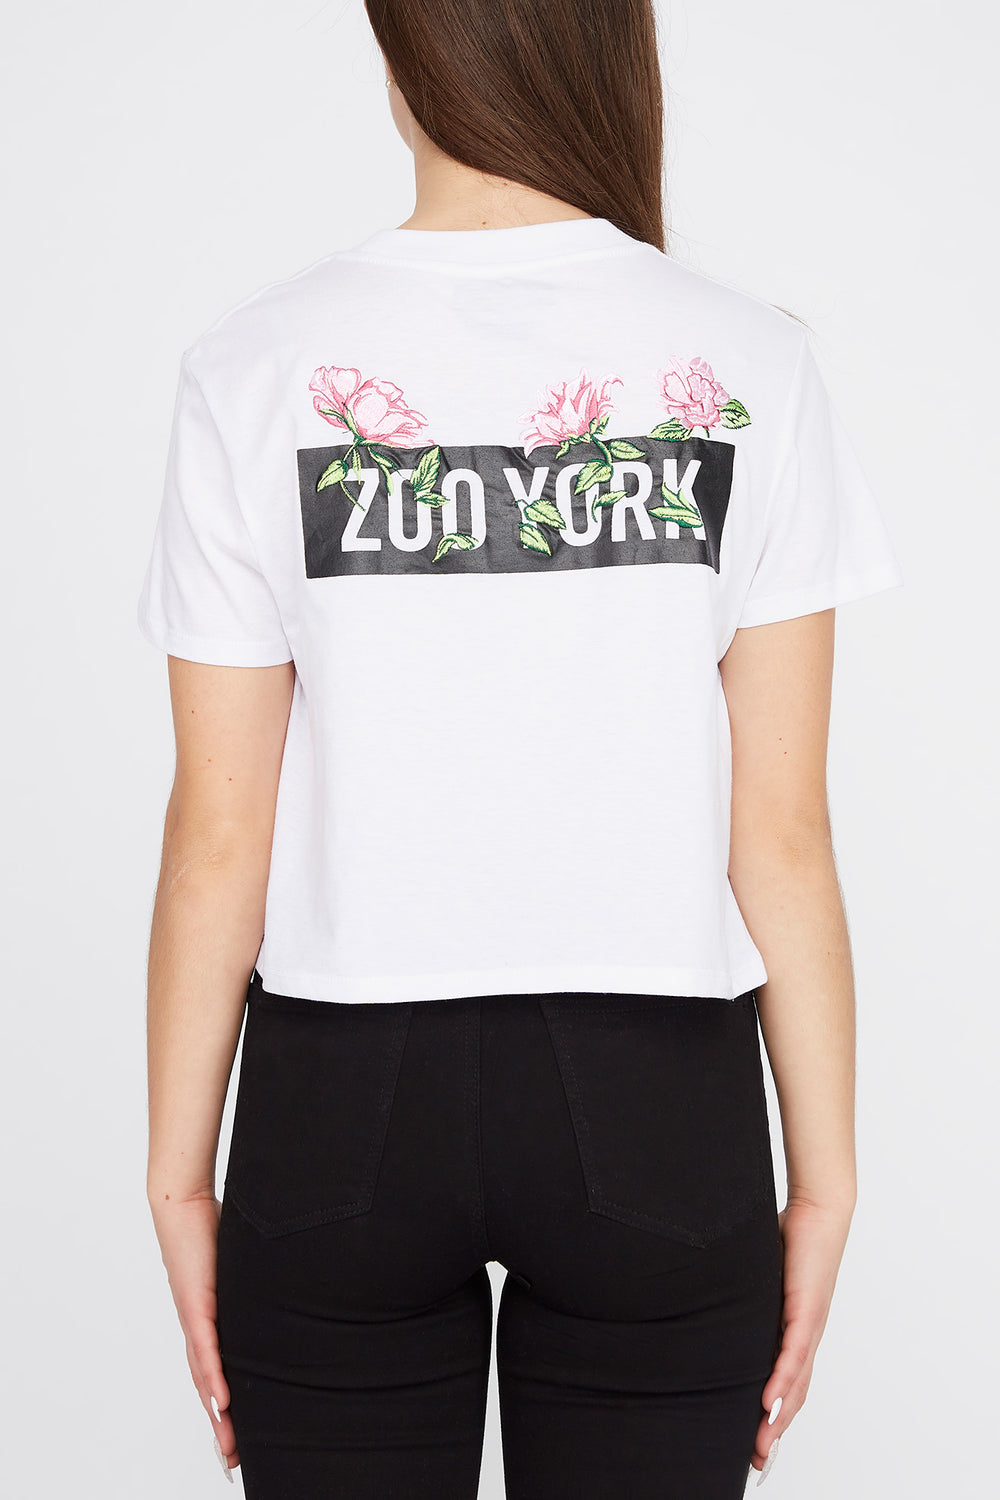 Zoo York Womens Rose Logo Cropped T-Shirt White